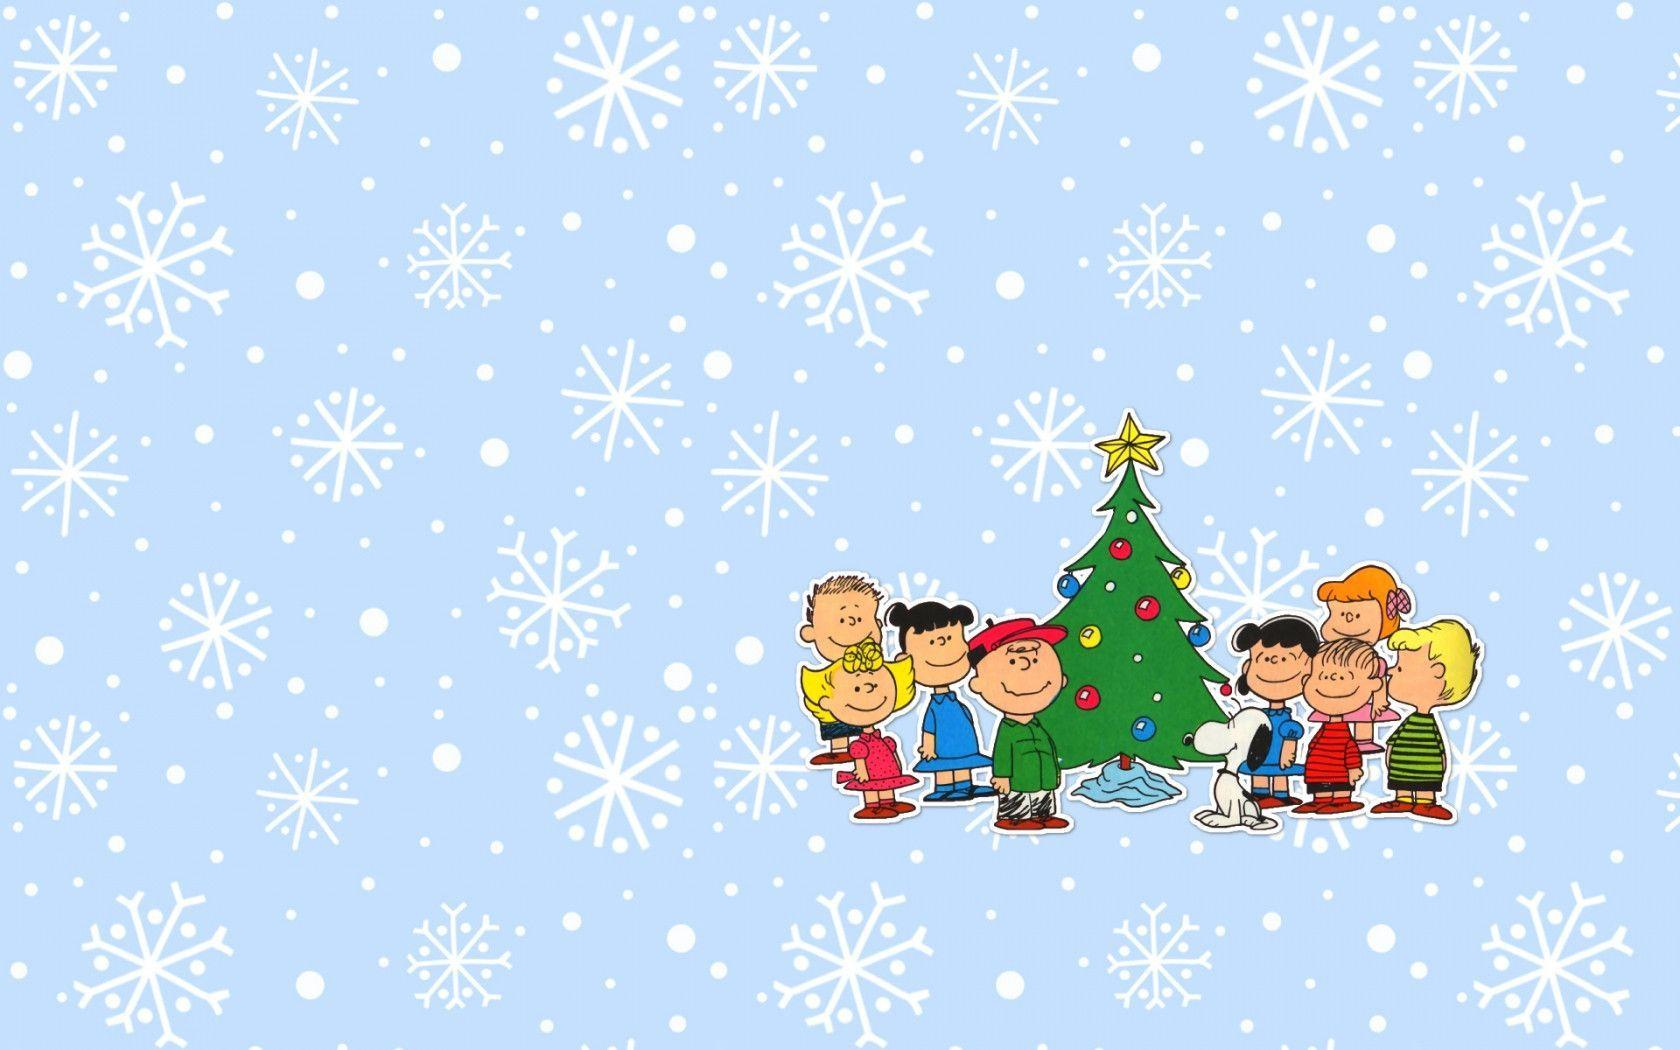 Snoopys Christmas Lyrics.Charlie Brown Christmas Wallpapers Top Free Charlie Brown